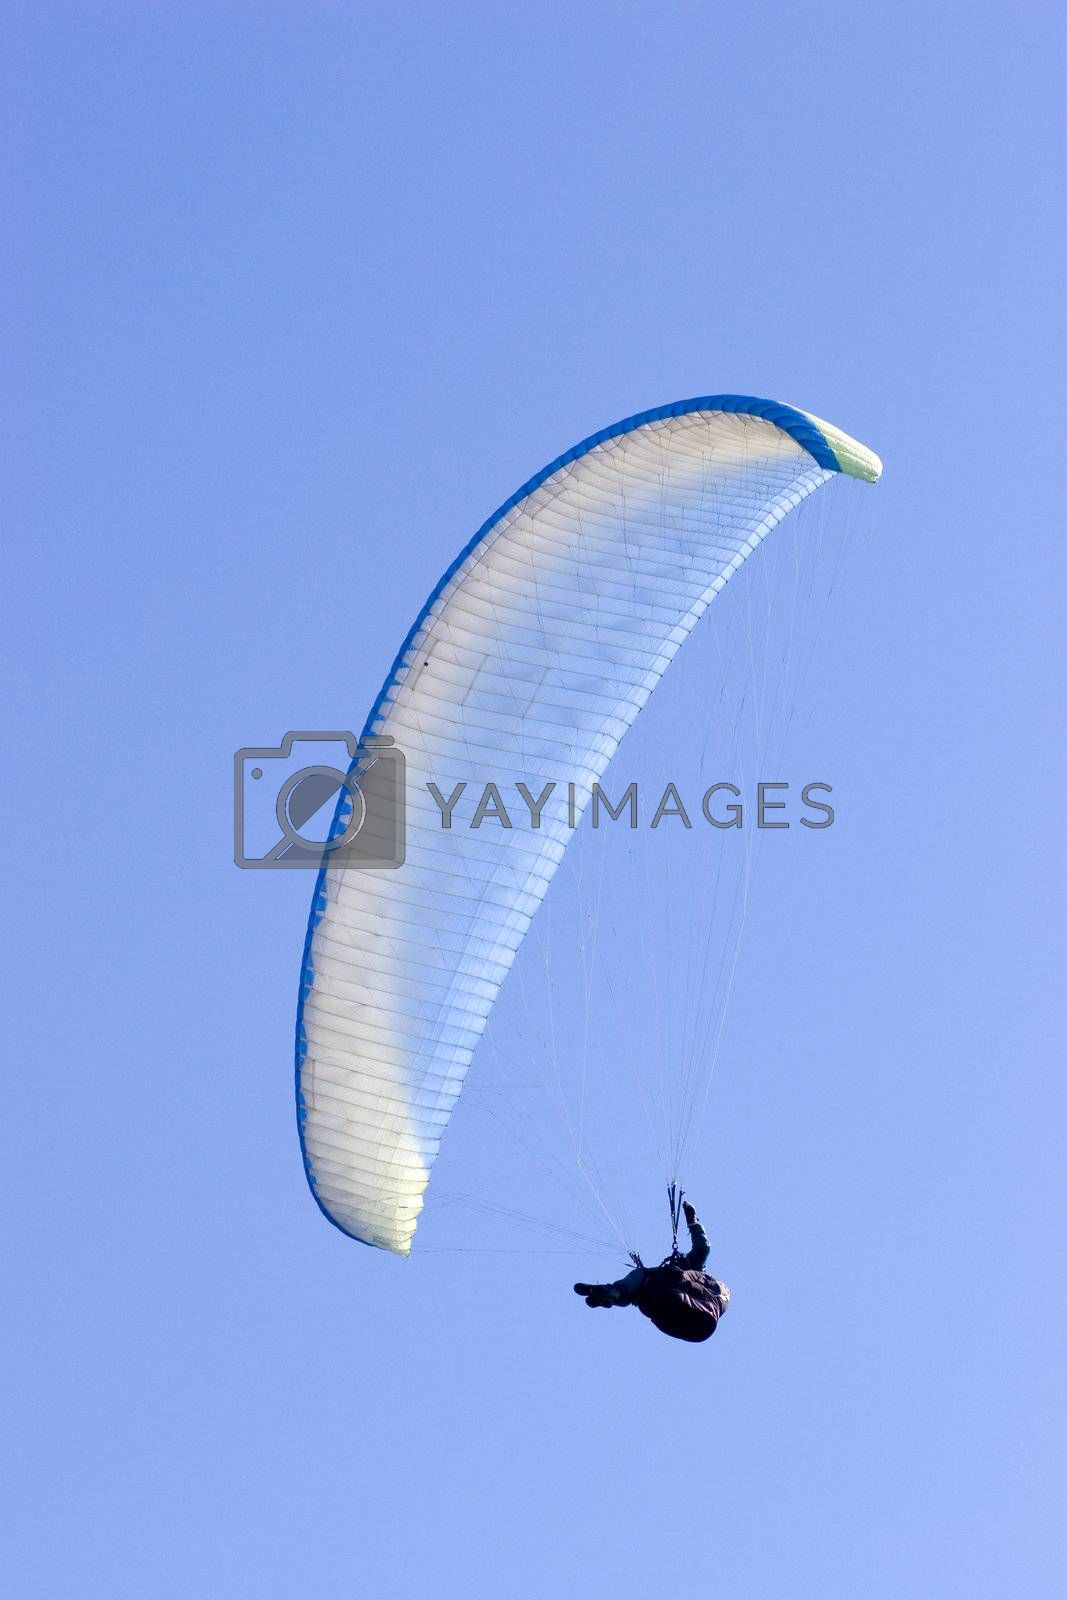 Paraglider in a clear blue sky